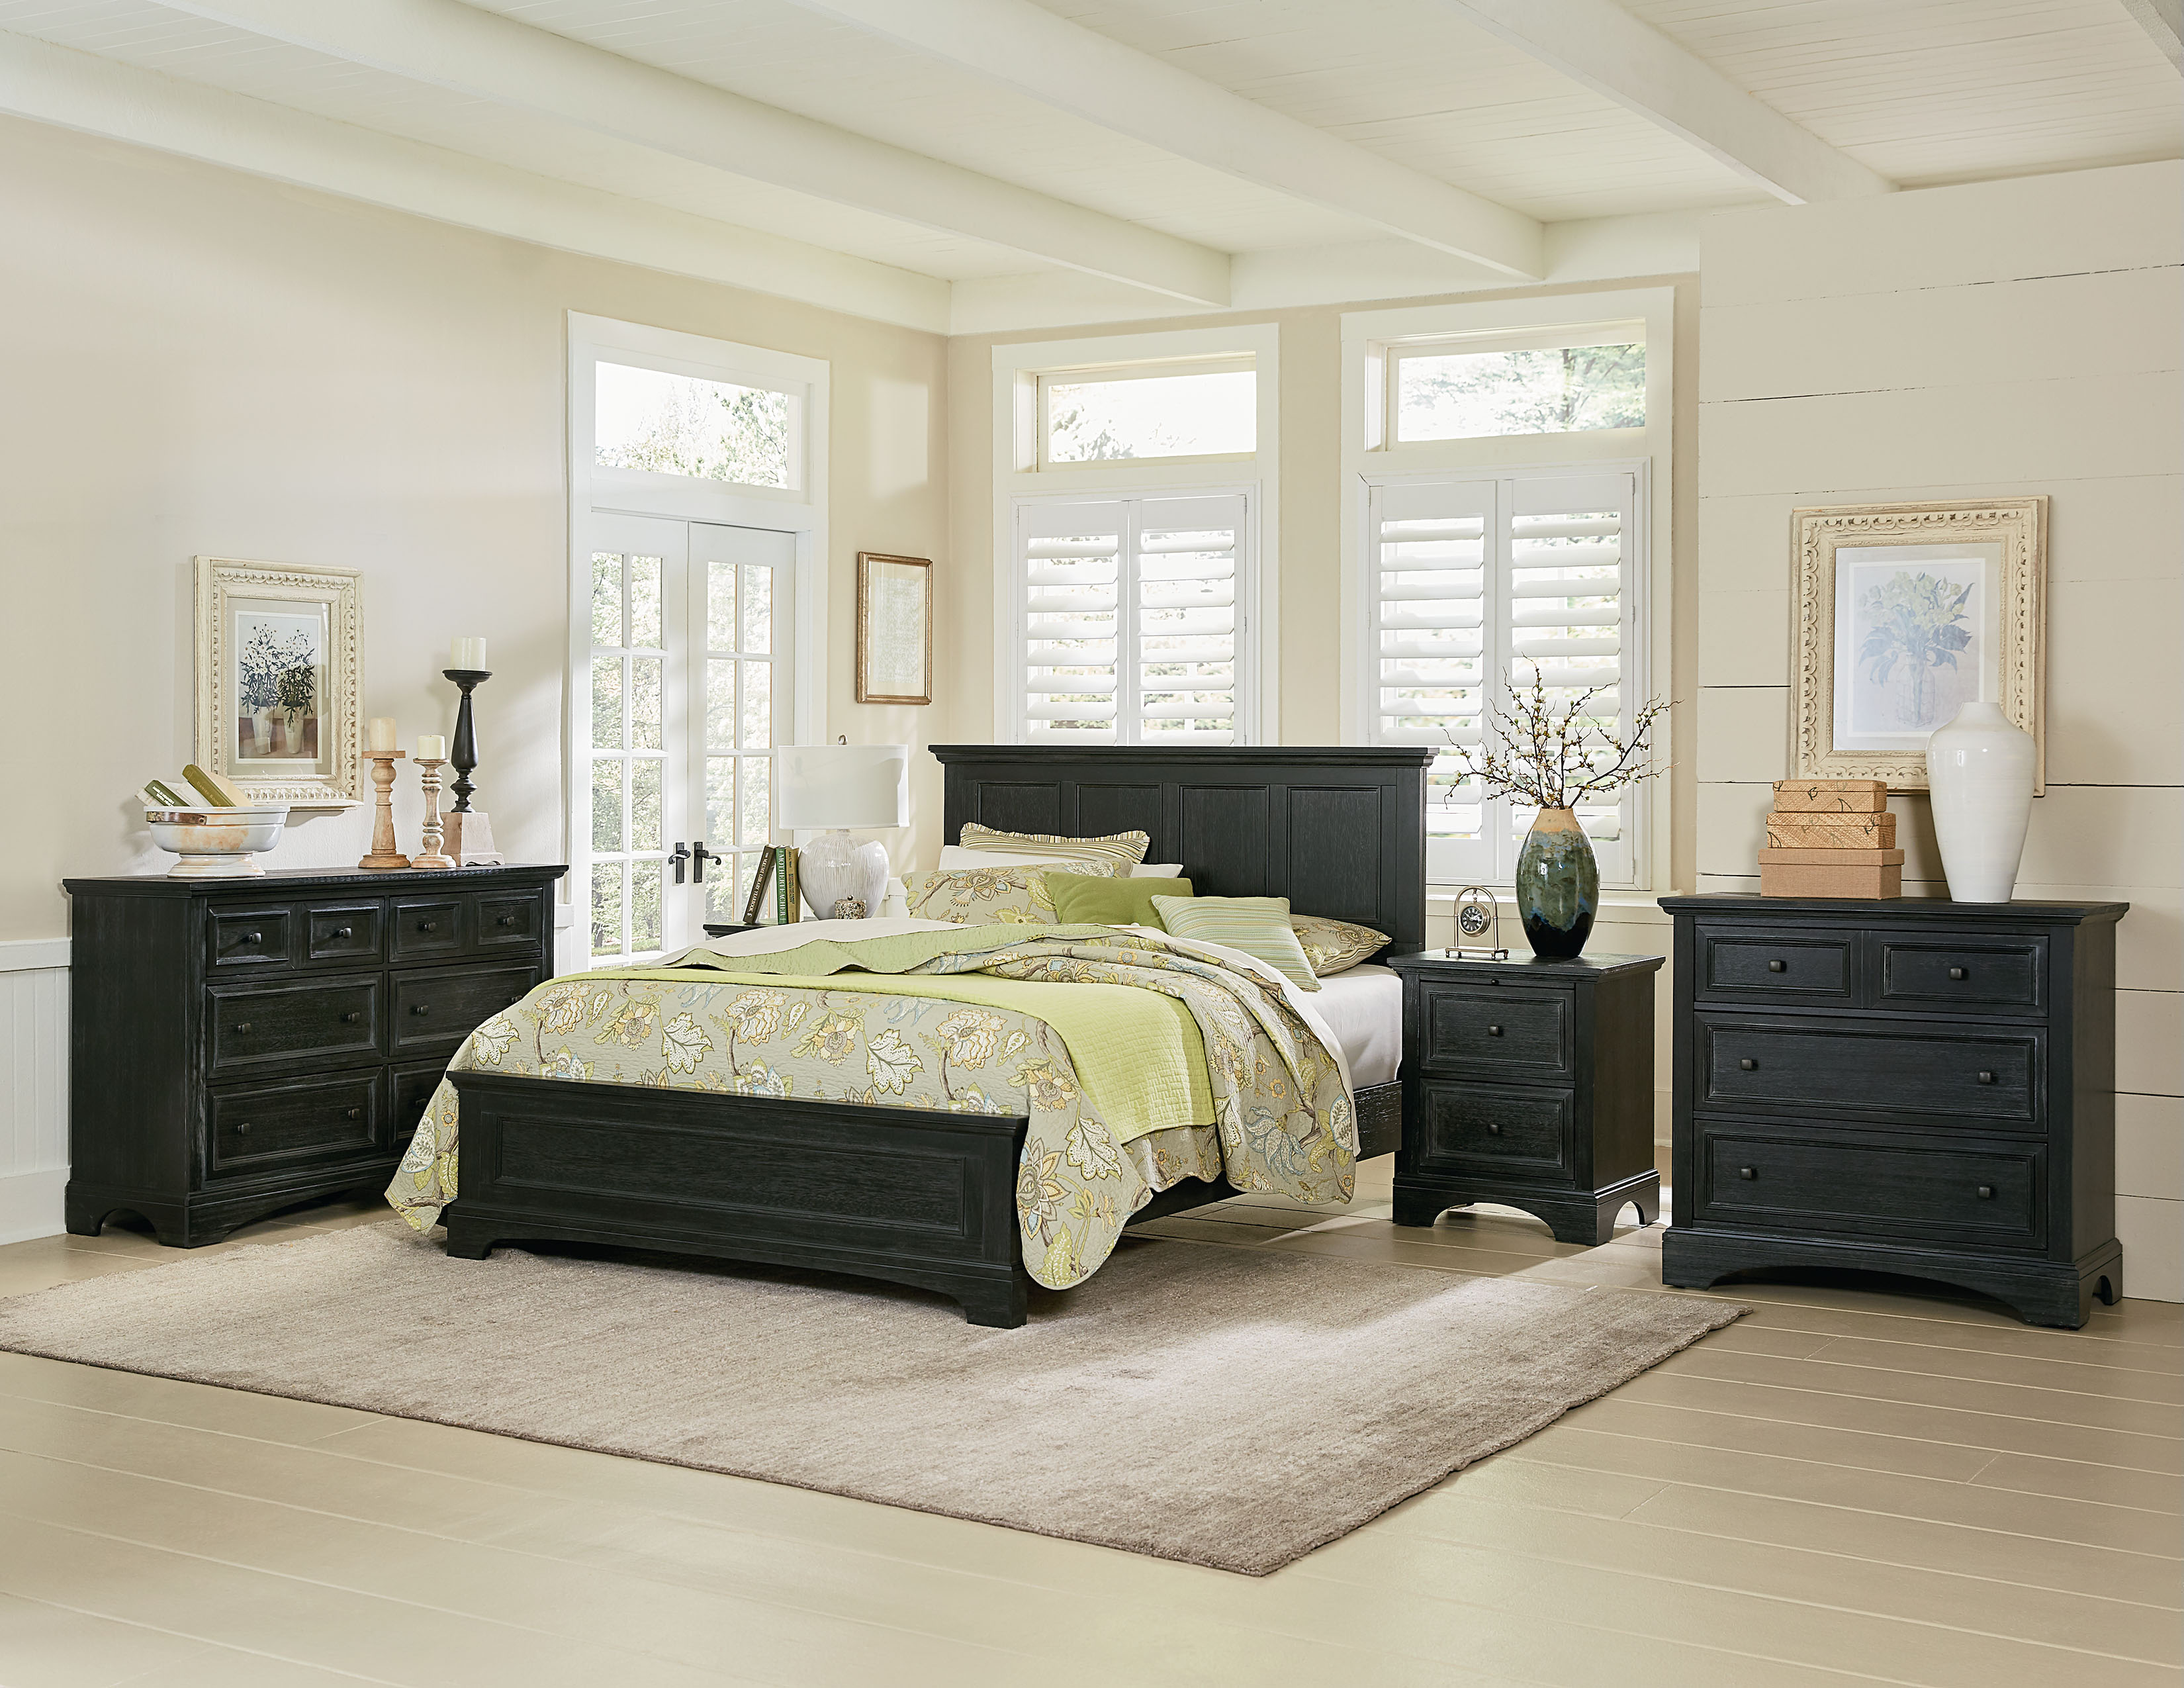 farmhouse basics queen bedroom set with 2 nightstands and 1 dresser